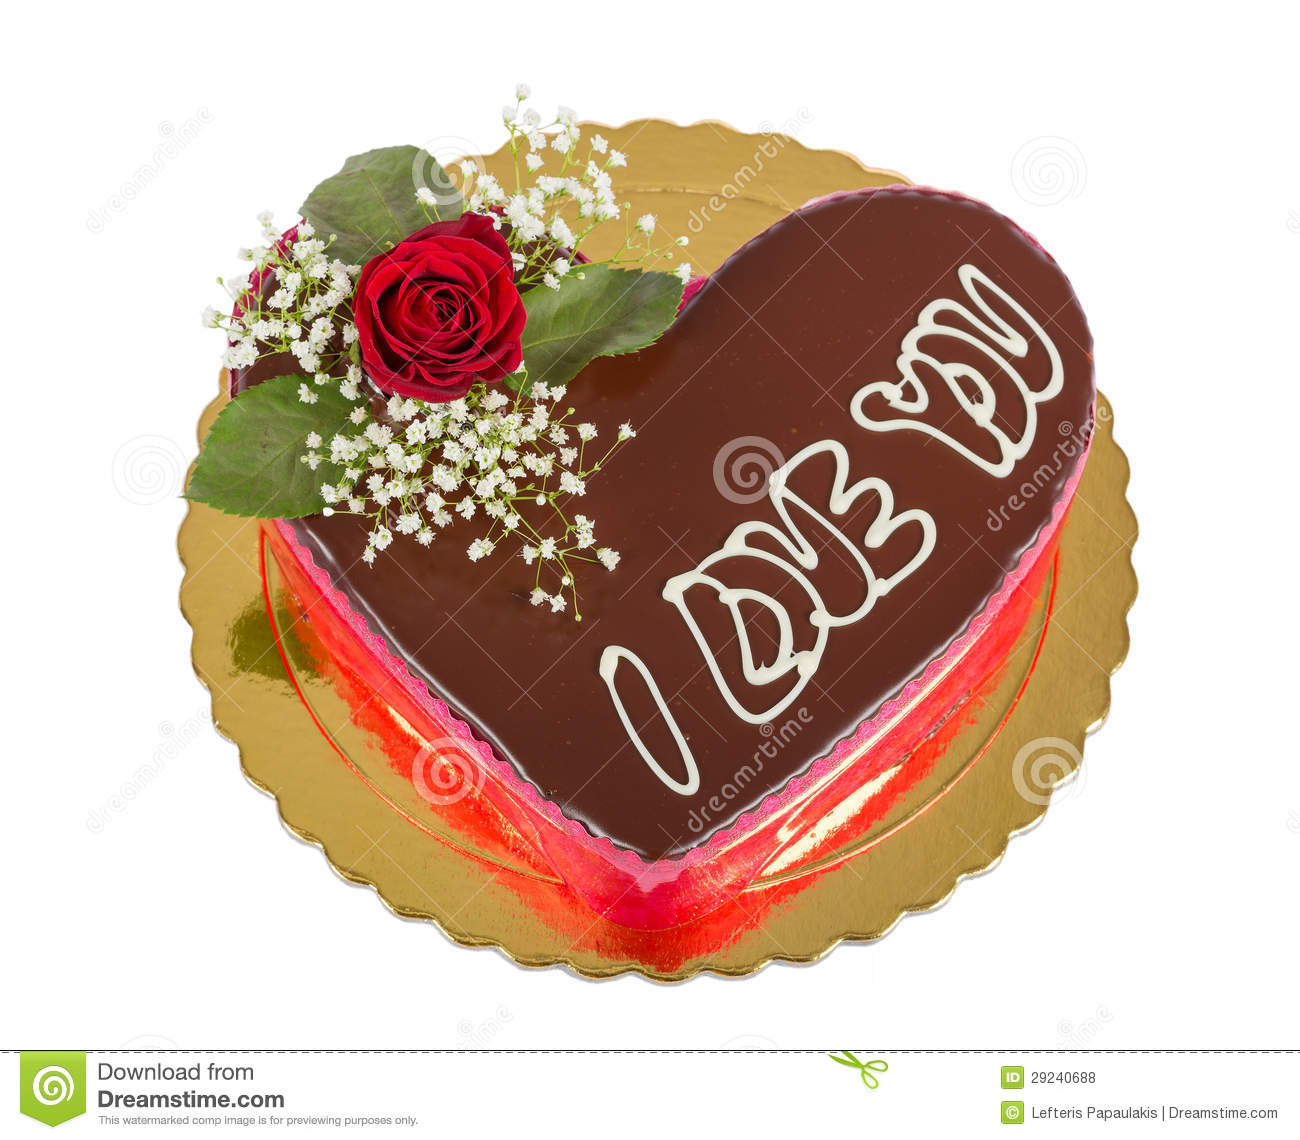 Heart Shaped Cake Stock Photos : Heart Shaped Chocolate Cake Isolated Stock Photo - Image ...